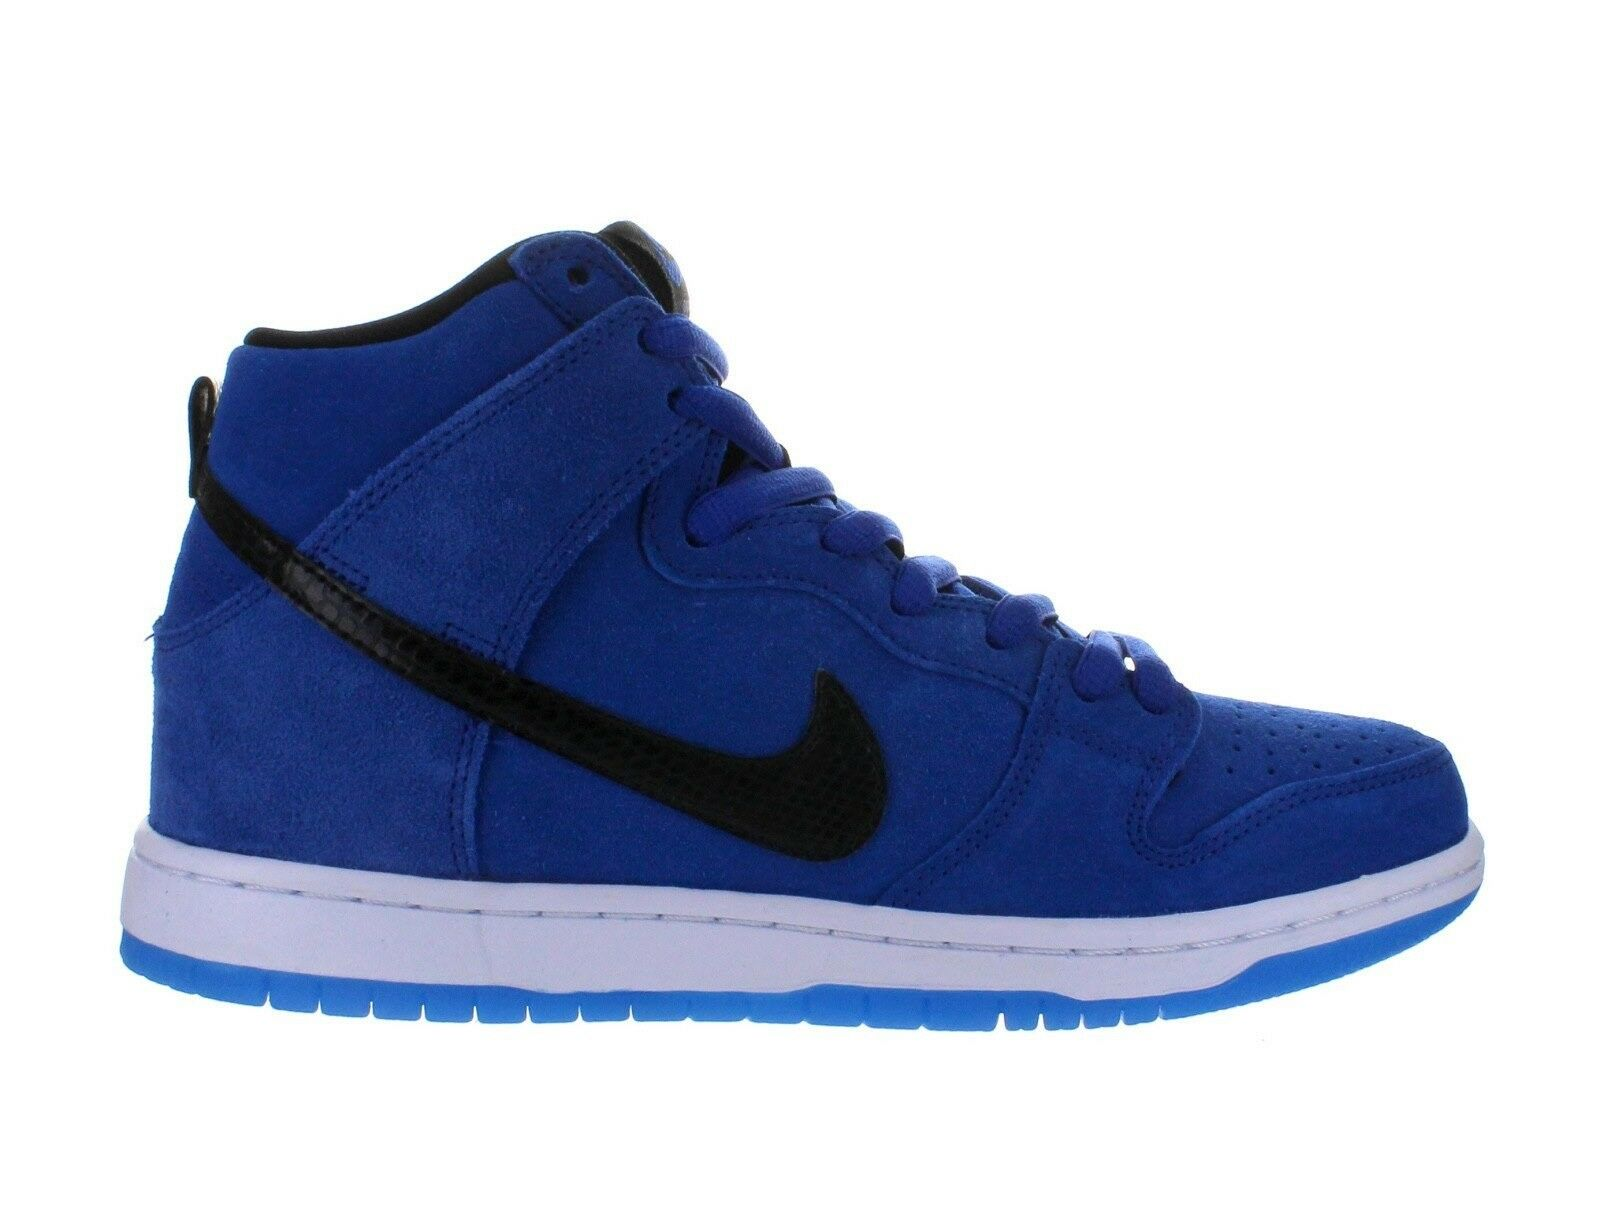 los angeles 71444 bea63 Nike DUNK HIGH PRO SB Game Royal Black White Discounted (440) Men s shoes